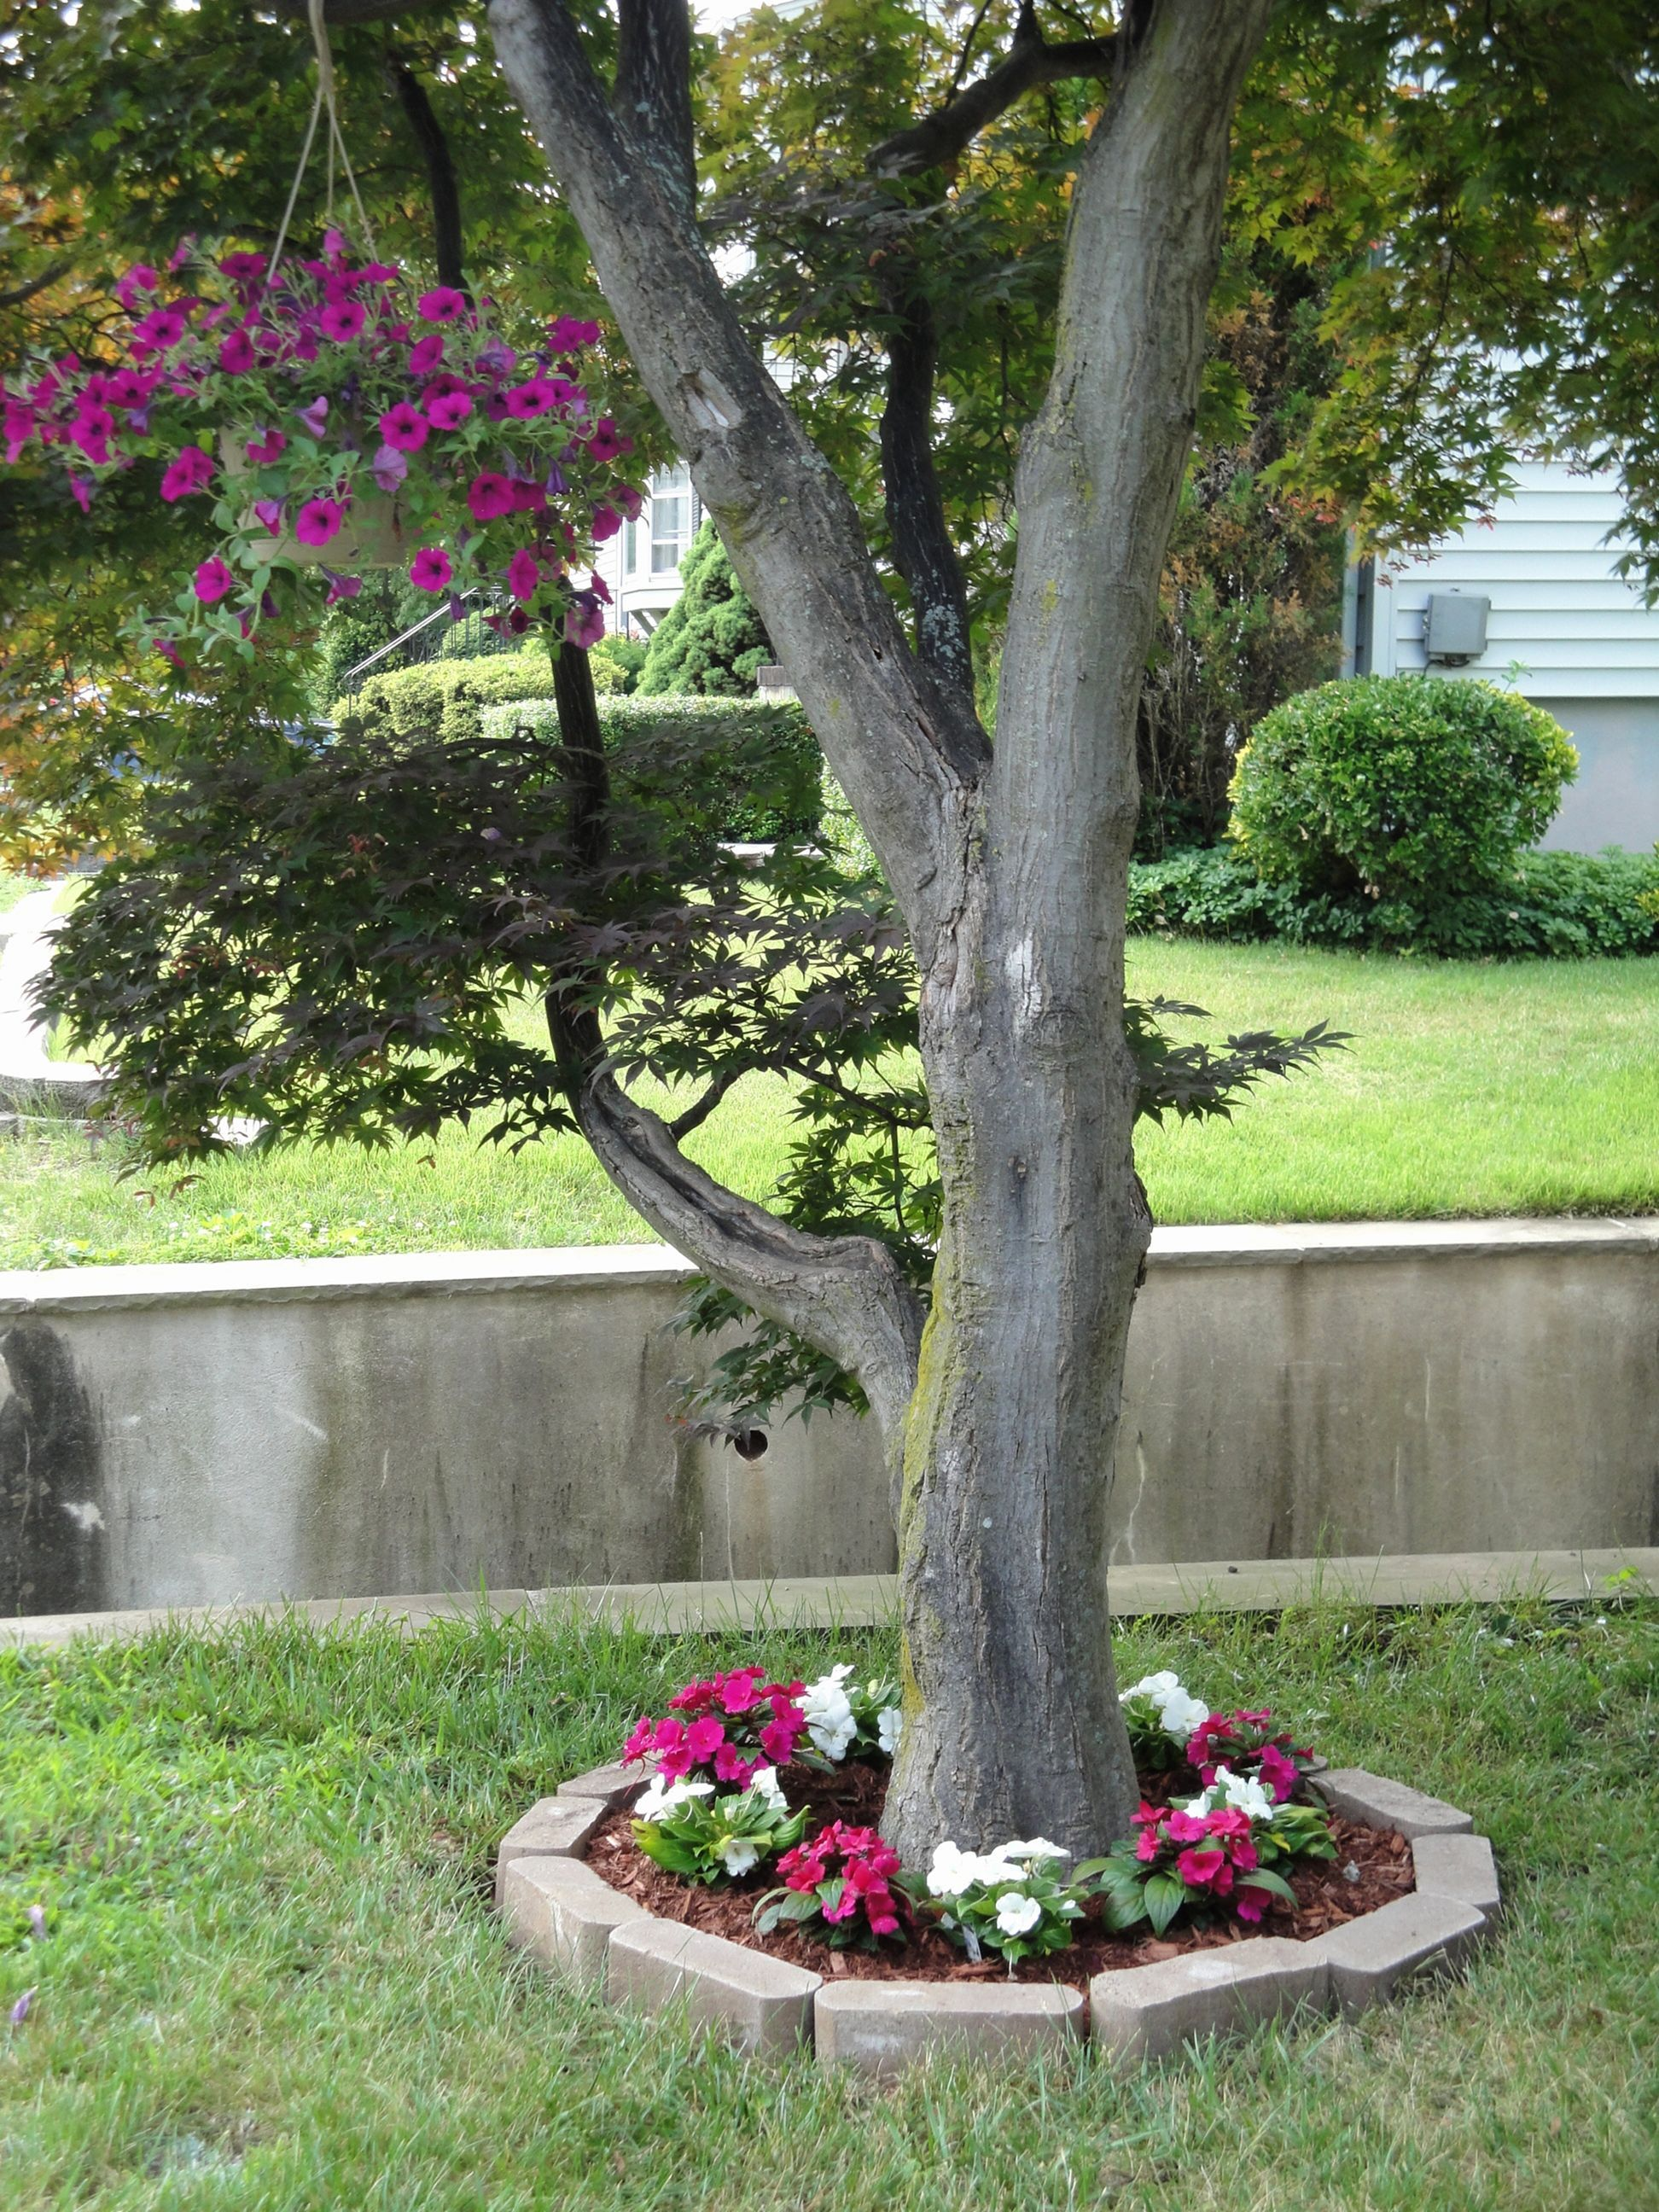 15 Incredible Flower Bed Design Ideas For Your Small Front Landscaping #flowerbeds